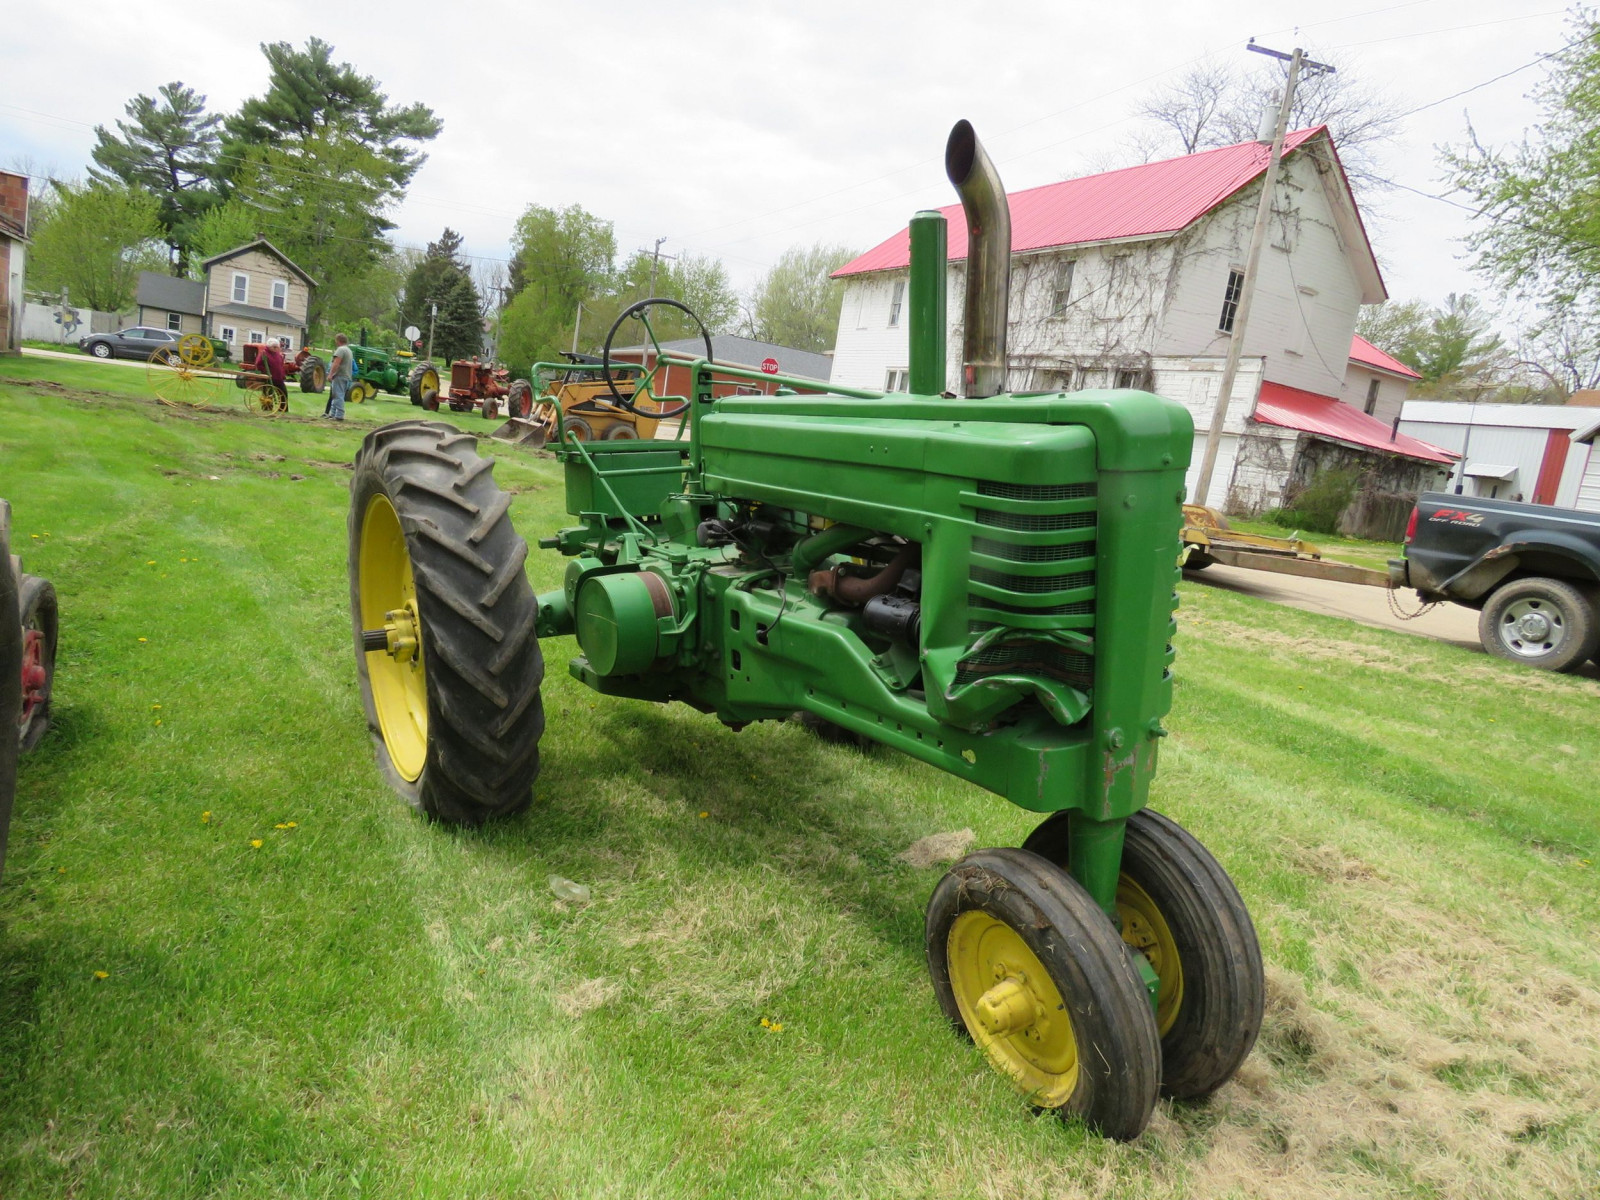 Styled John Deere A Tractor - Image 3